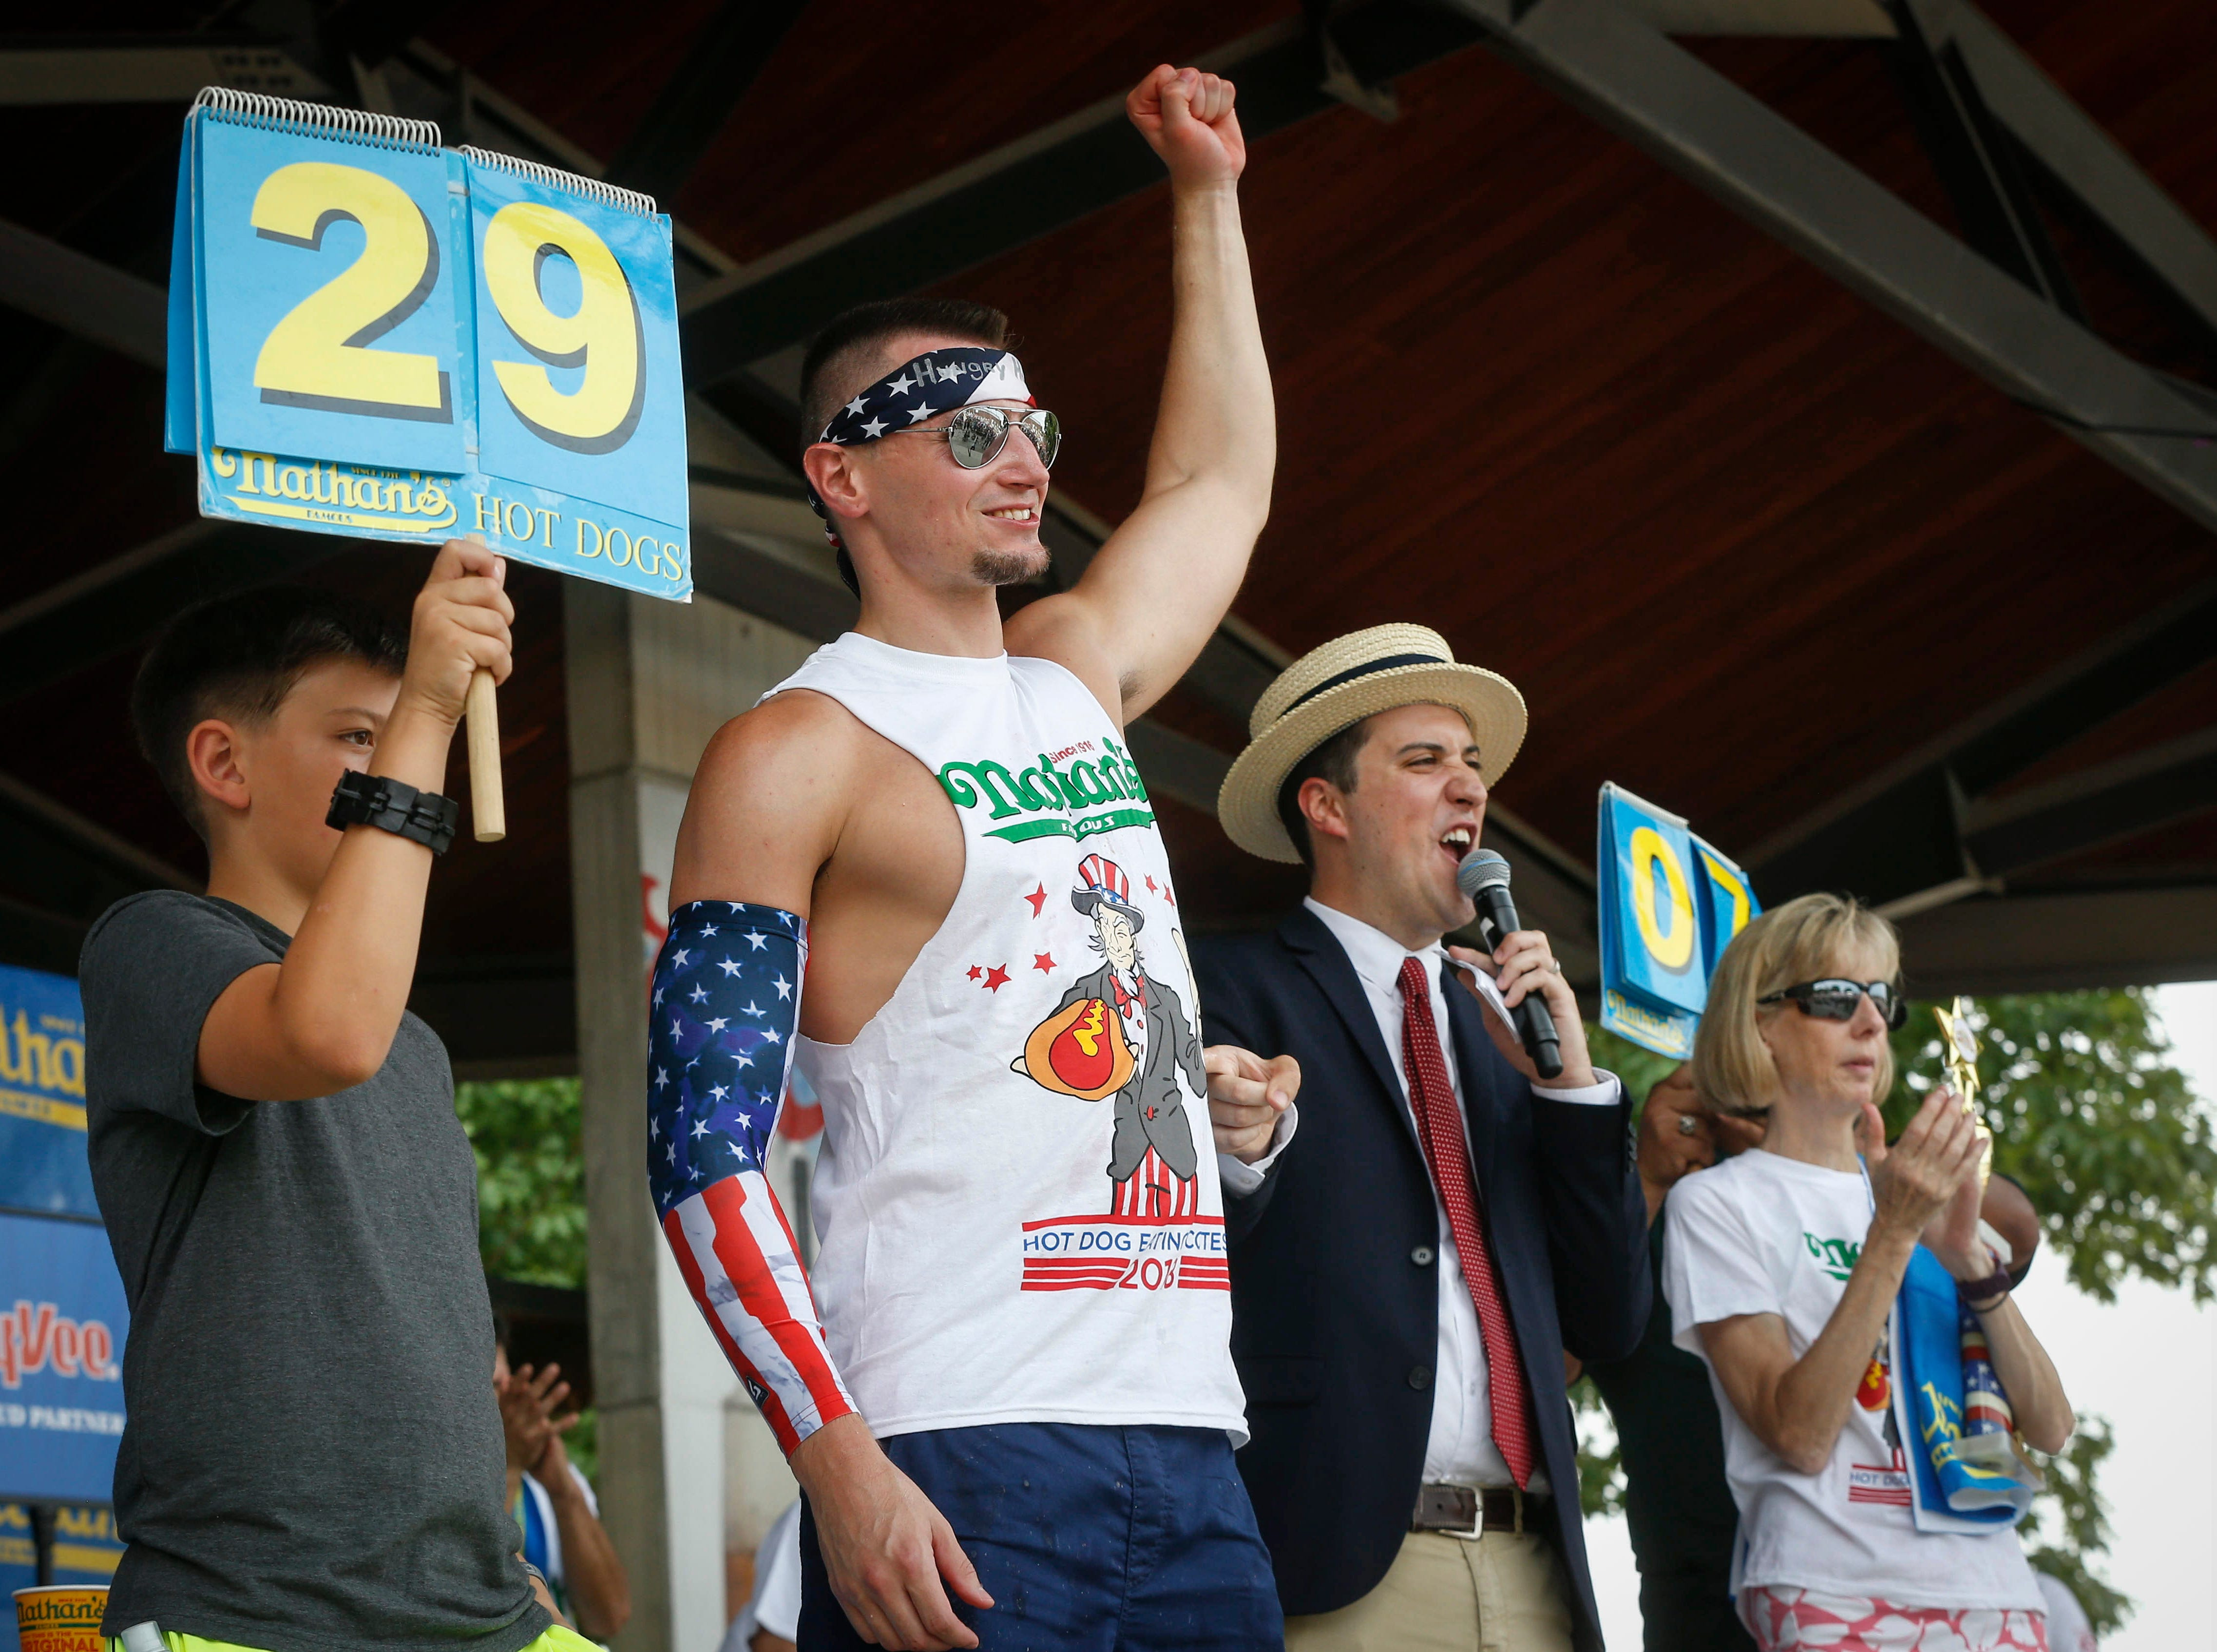 """Matt """"Hungry"""" Hazzard of Normal, Ill., won the Nathan's Hot Dog eating contest in Des Moines after downing 29 dogs on Saturday, Aug. 11, 2018, during the Iowa State Fair in Des Moines."""